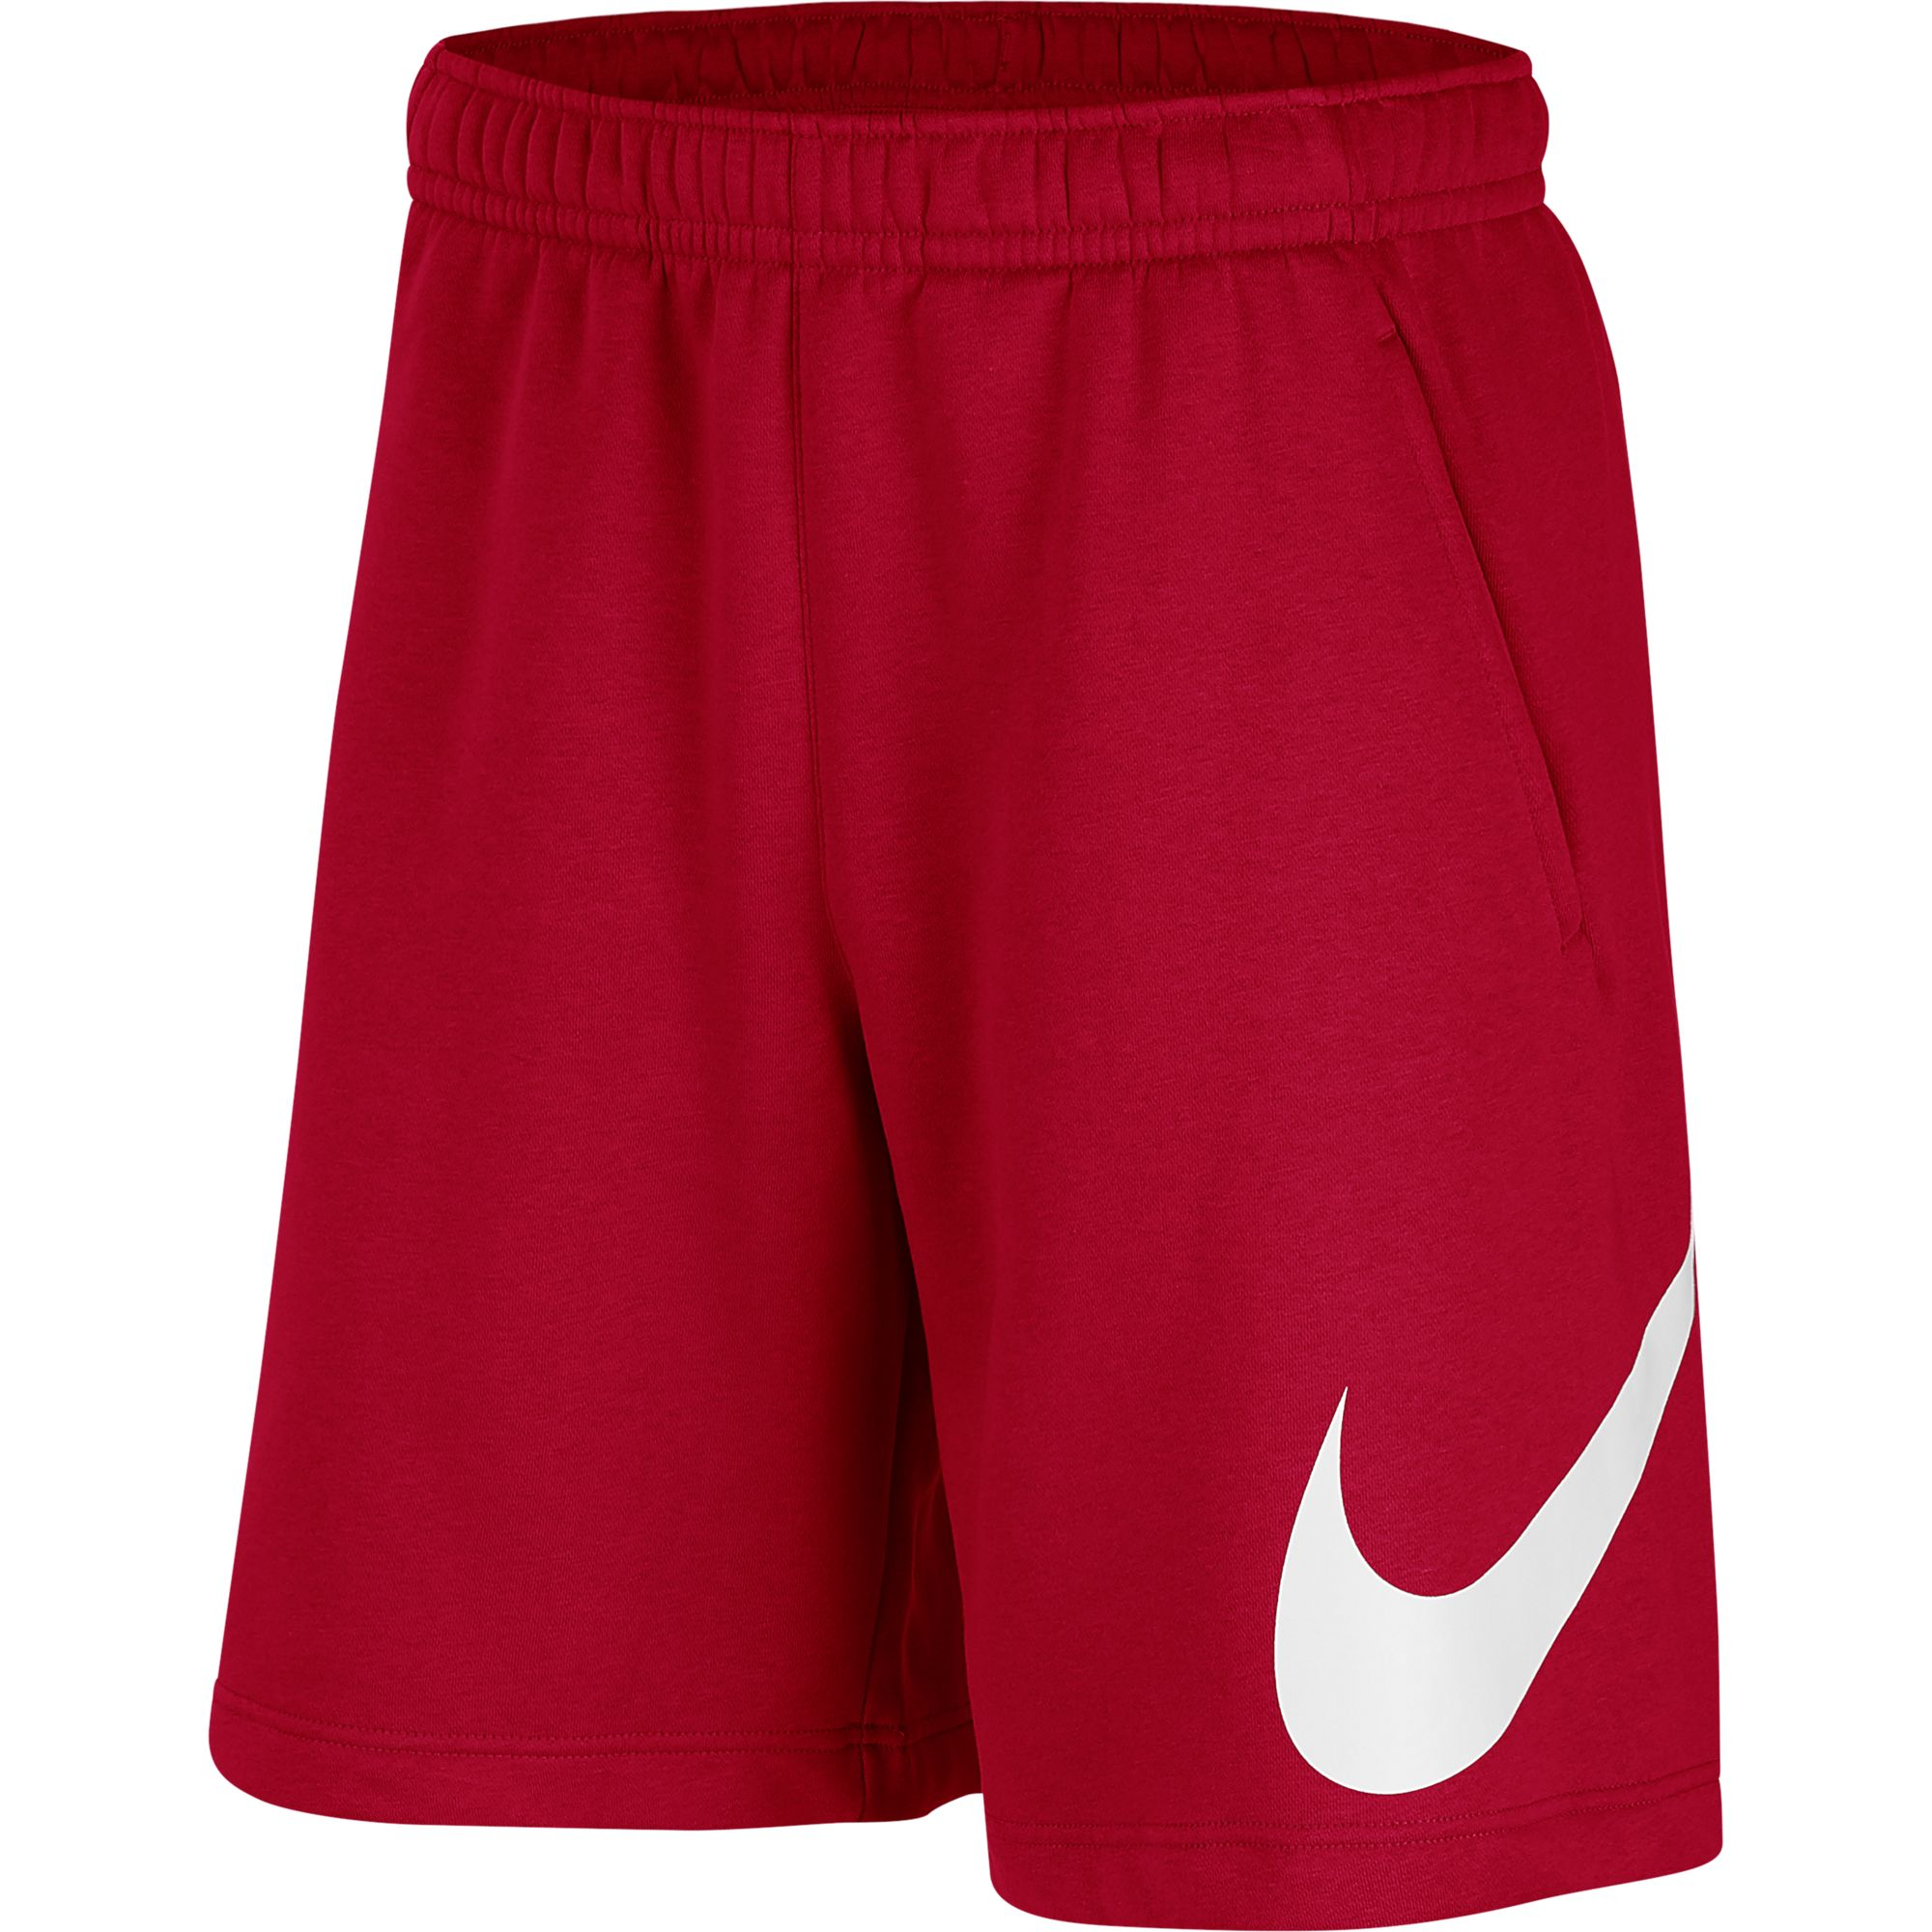 Men's Sportwear Club Graphic Shorts, Red, swatch